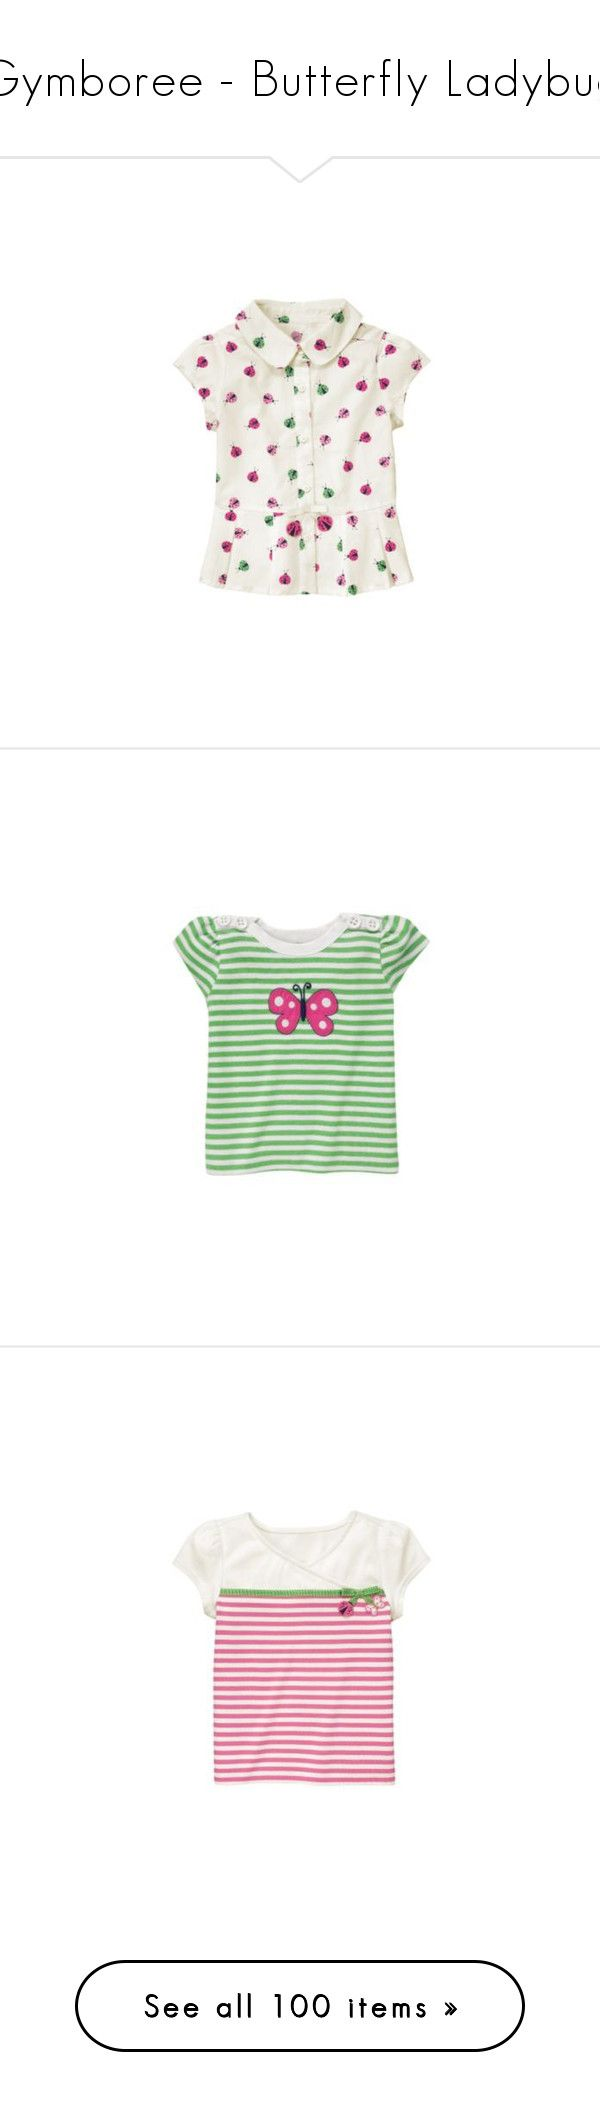 """""""Gymboree - Butterfly Ladybug"""" by baby-outfits ❤ liked on Polyvore featuring garden friends, girls, gymboree garden friends, butterflies, gymboree, spring, garden party, baby, kids and tops"""